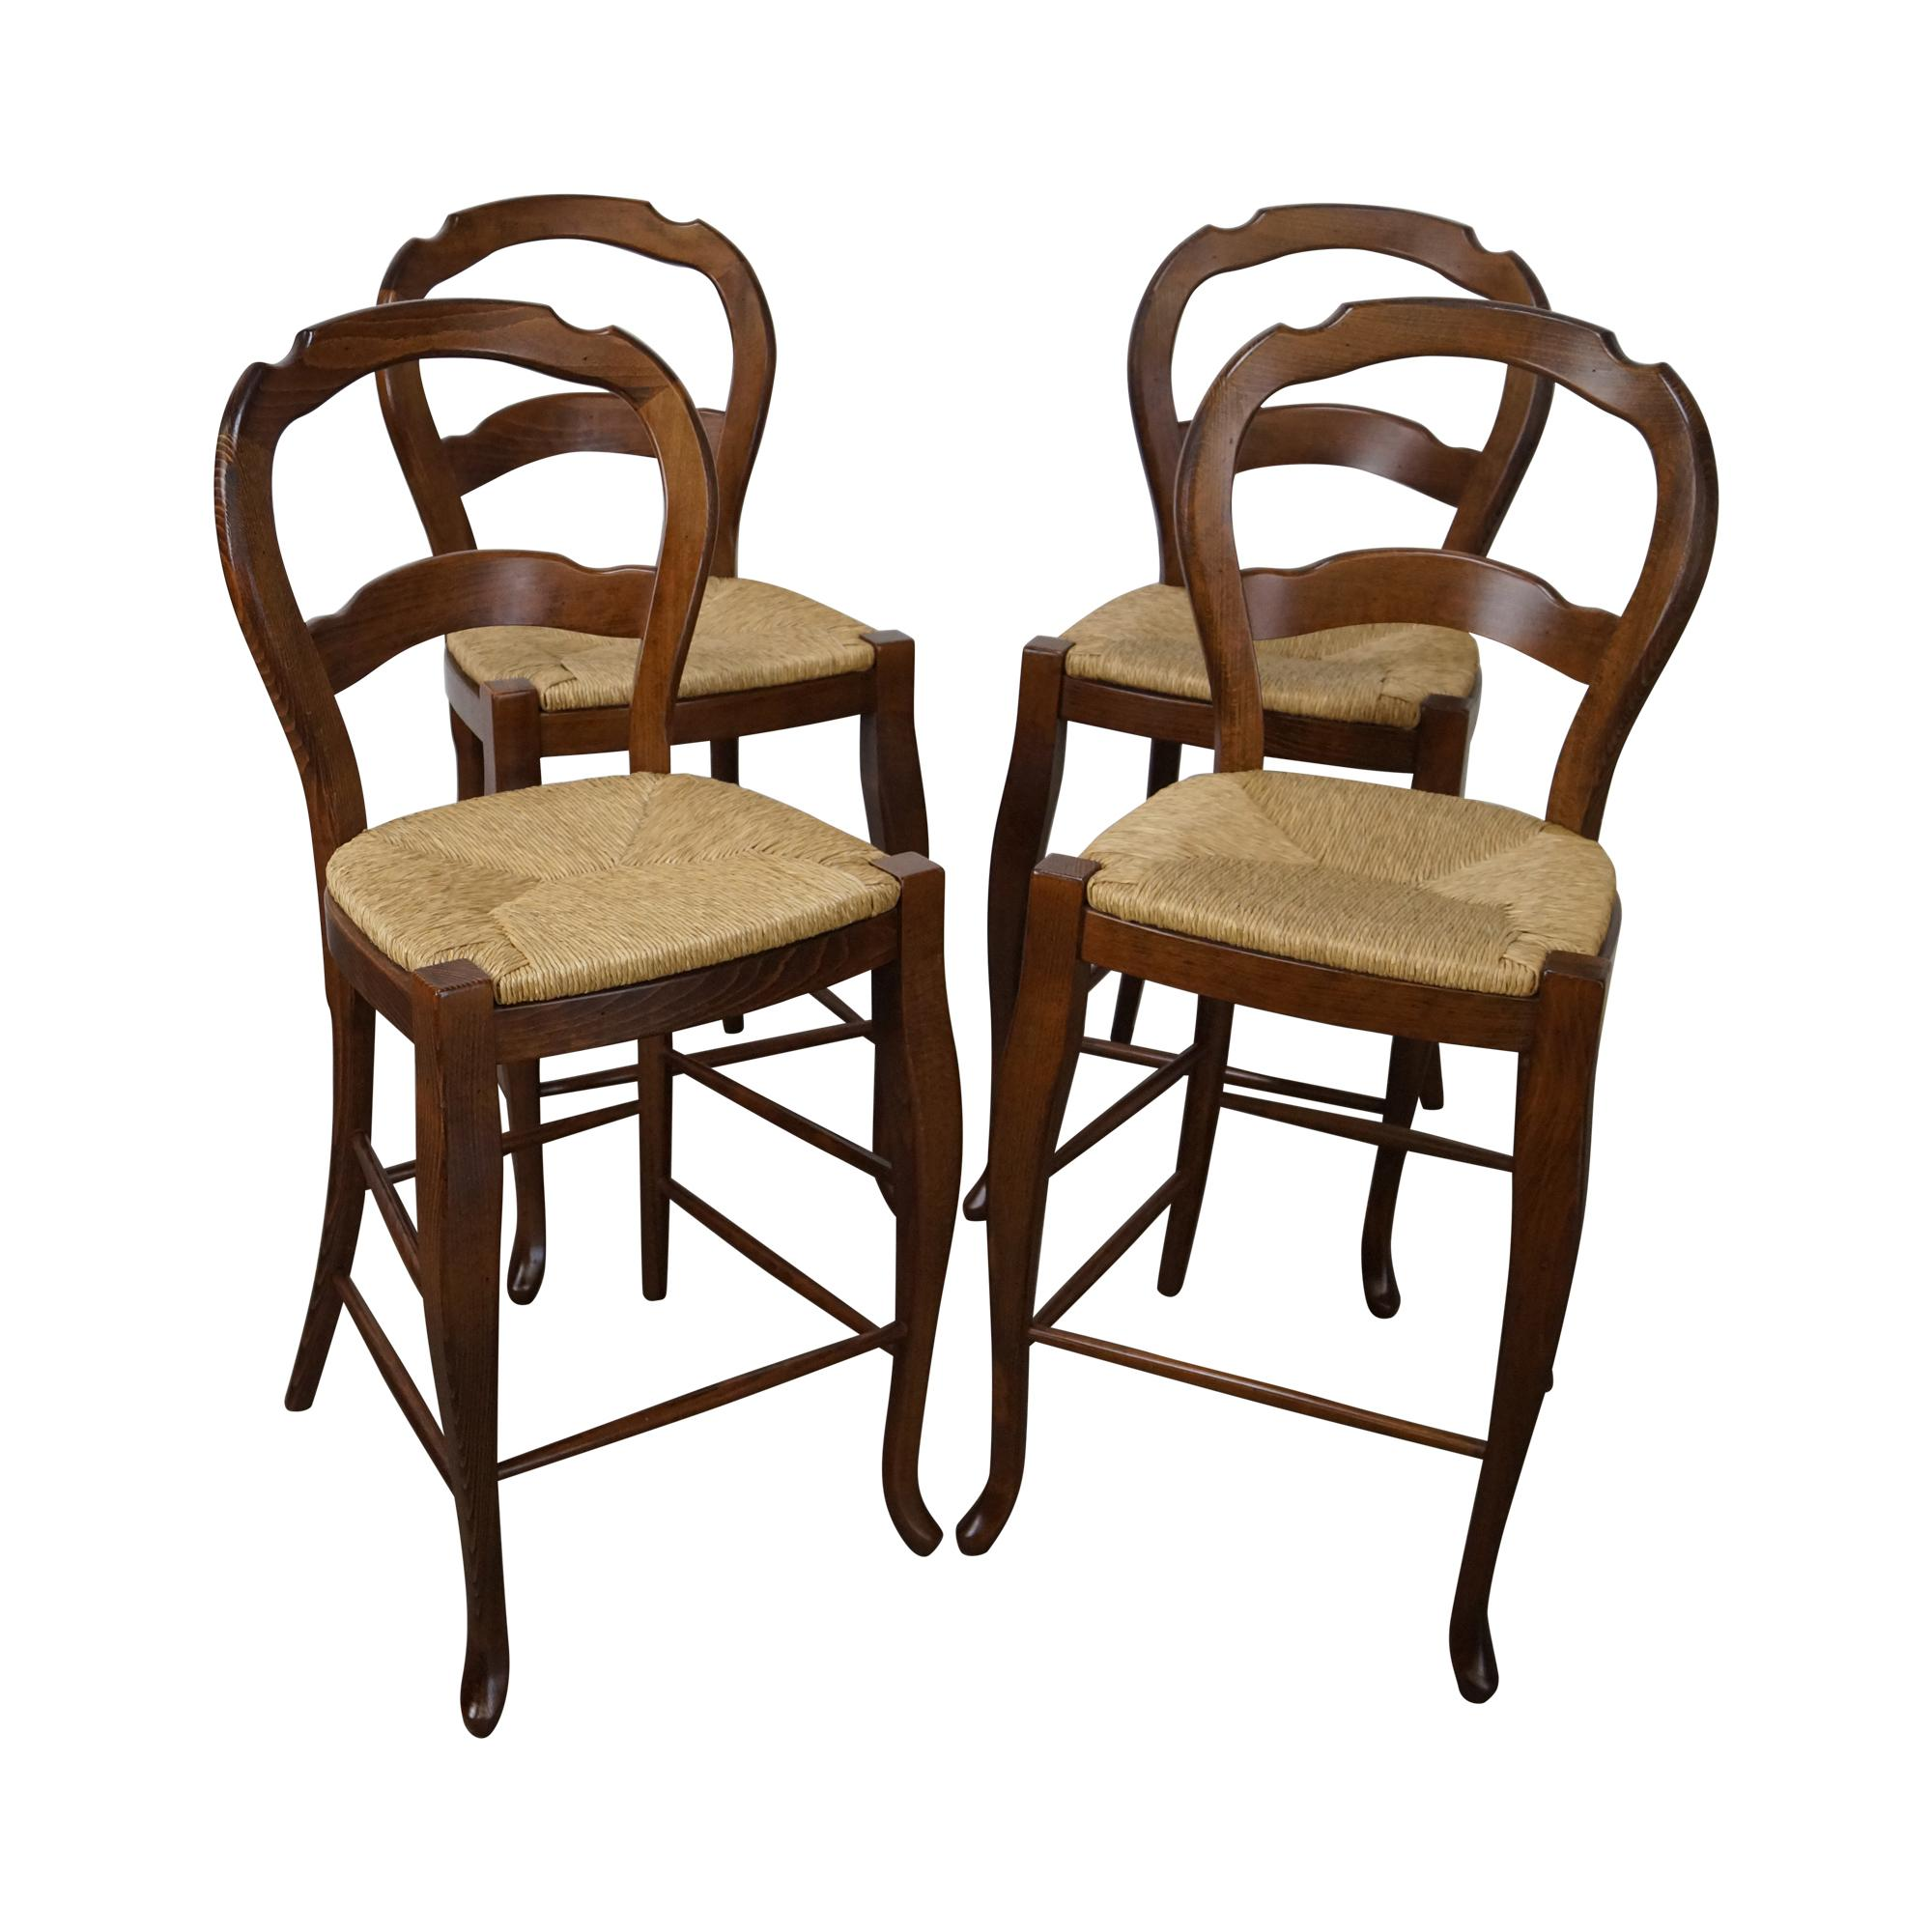 French Country Rush Seat Counter Stools Set Of 4 Chairish